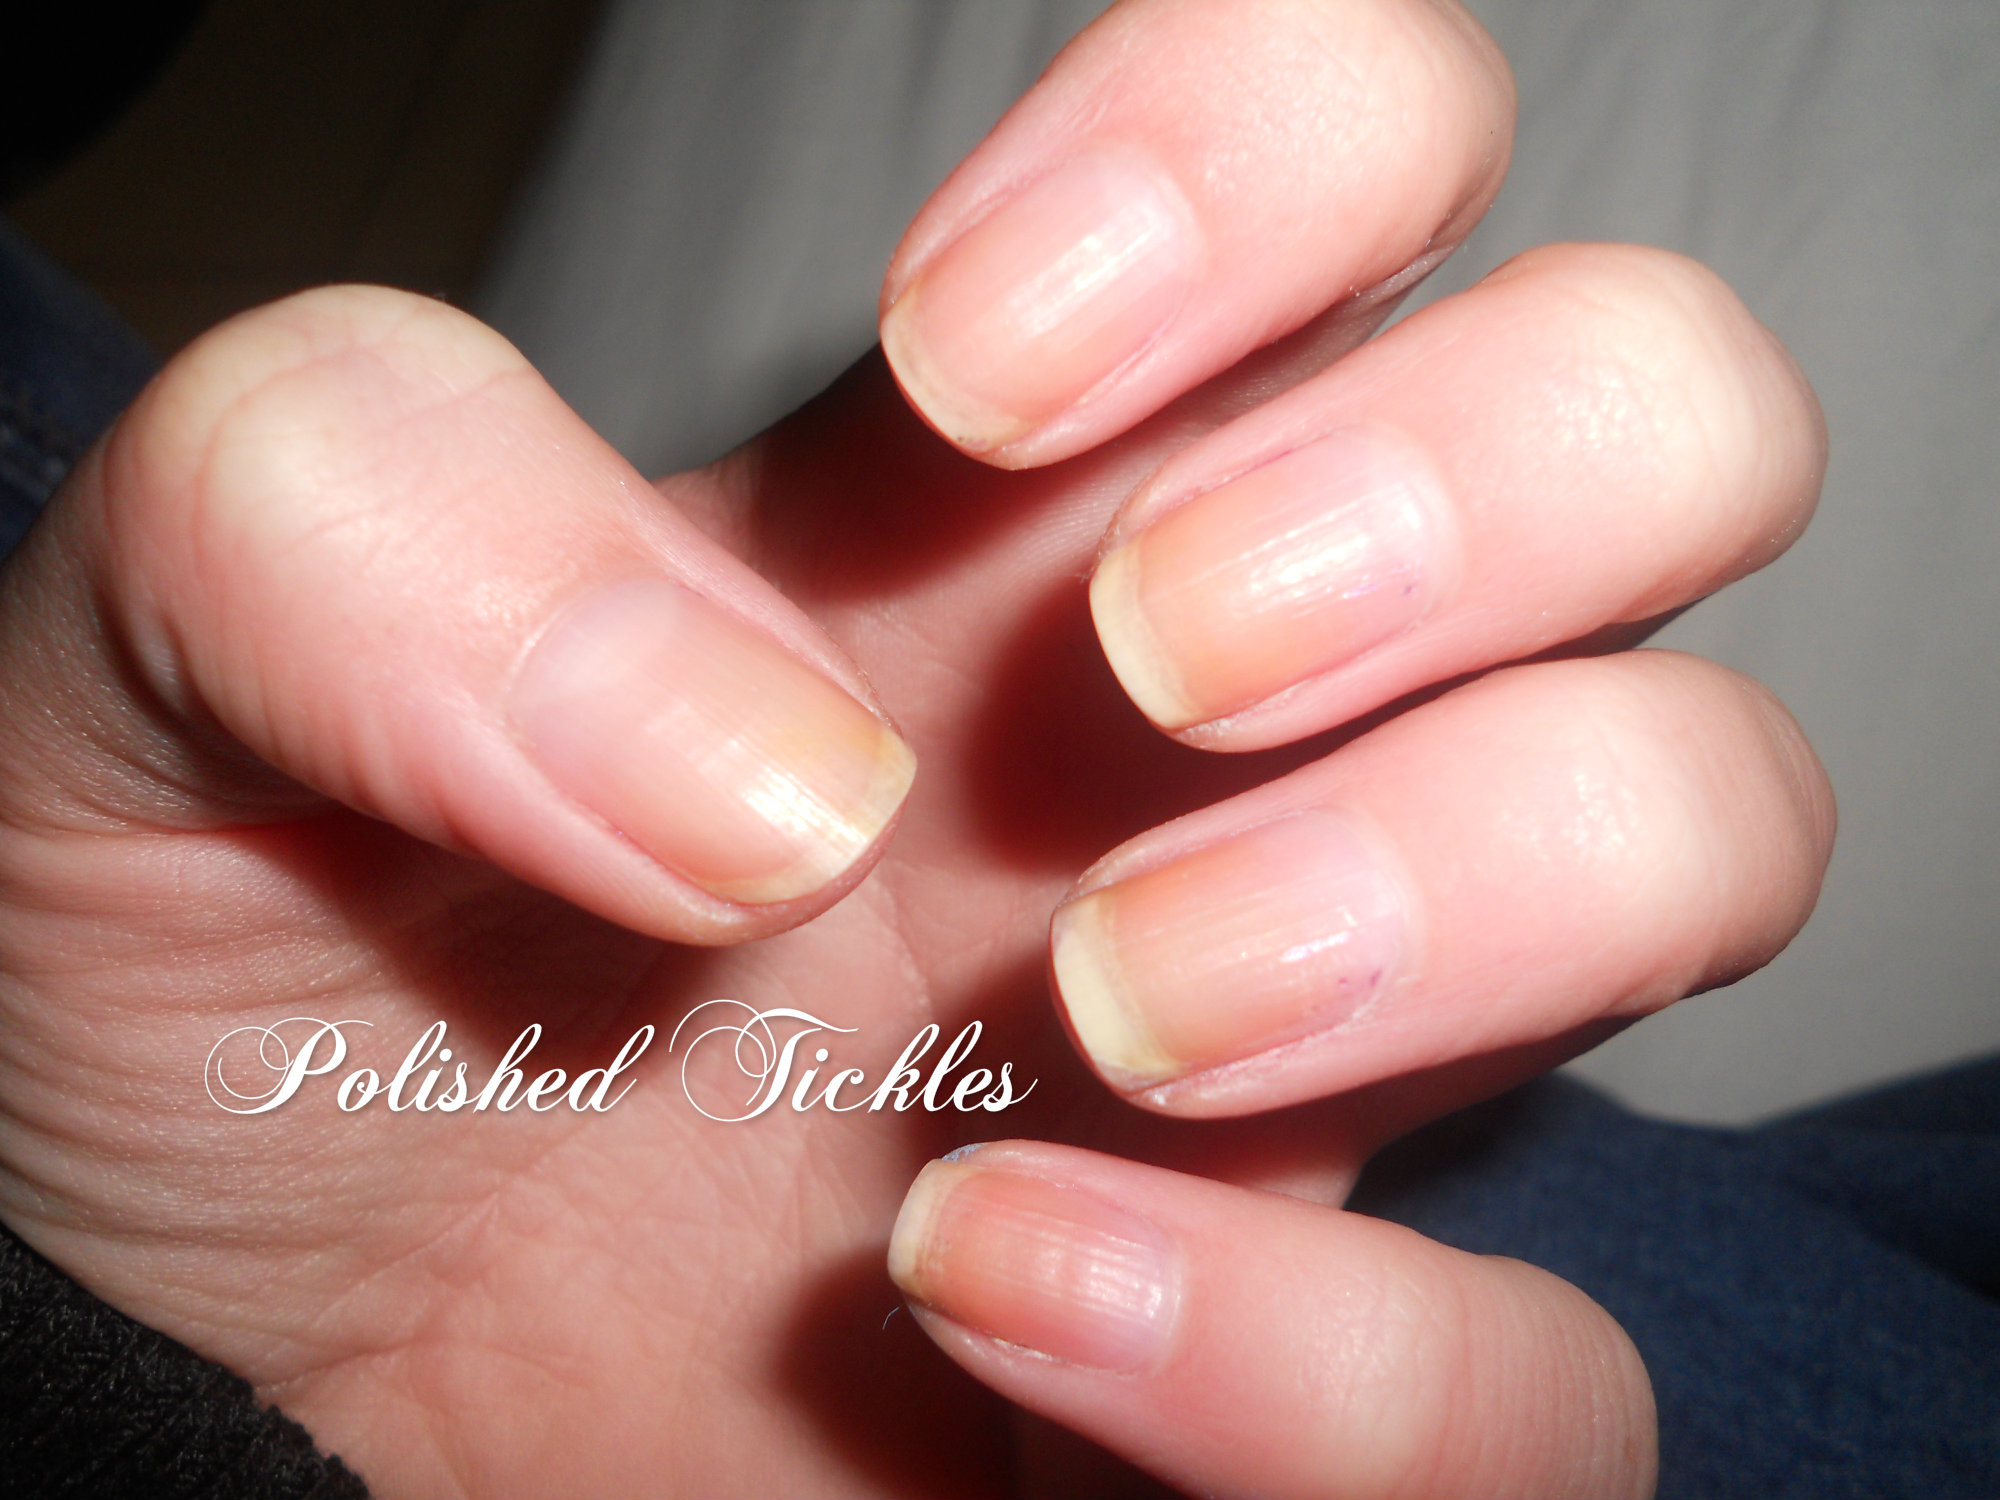 natural nails | Polished Tickles and Beauty